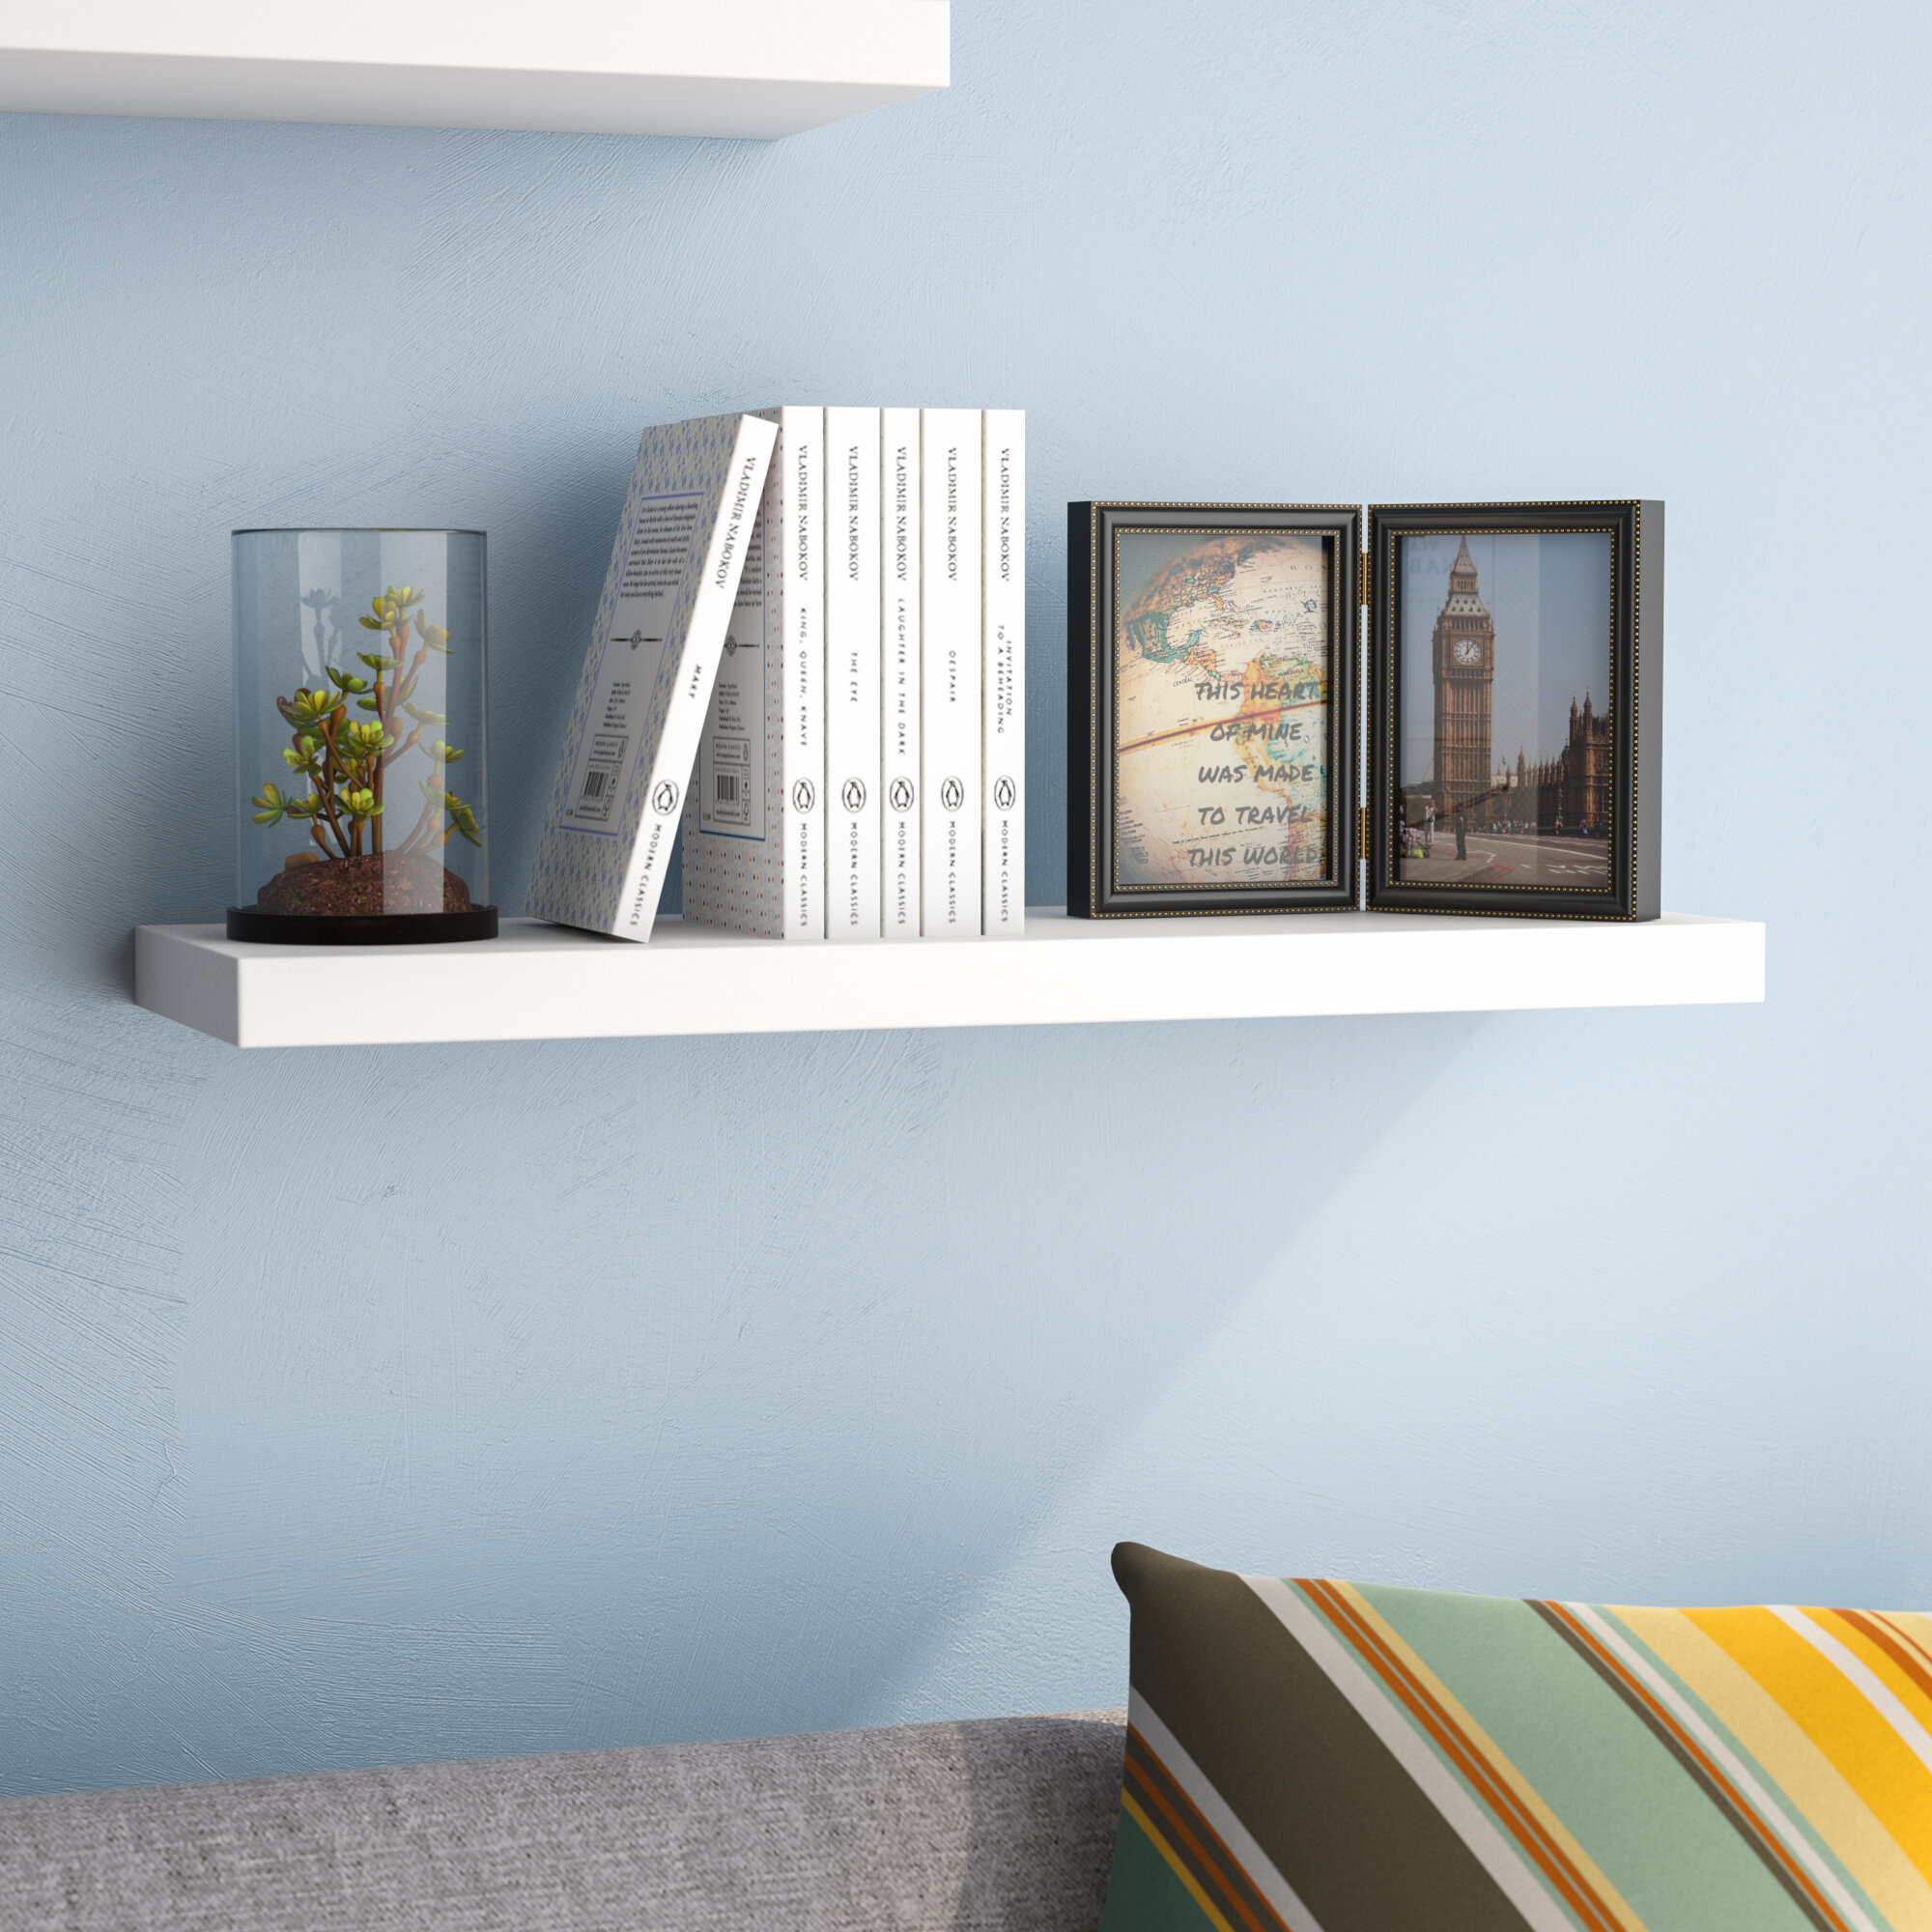 Ebern Designs Board Line Floating Wall Shelf & Reviews | Wayfair